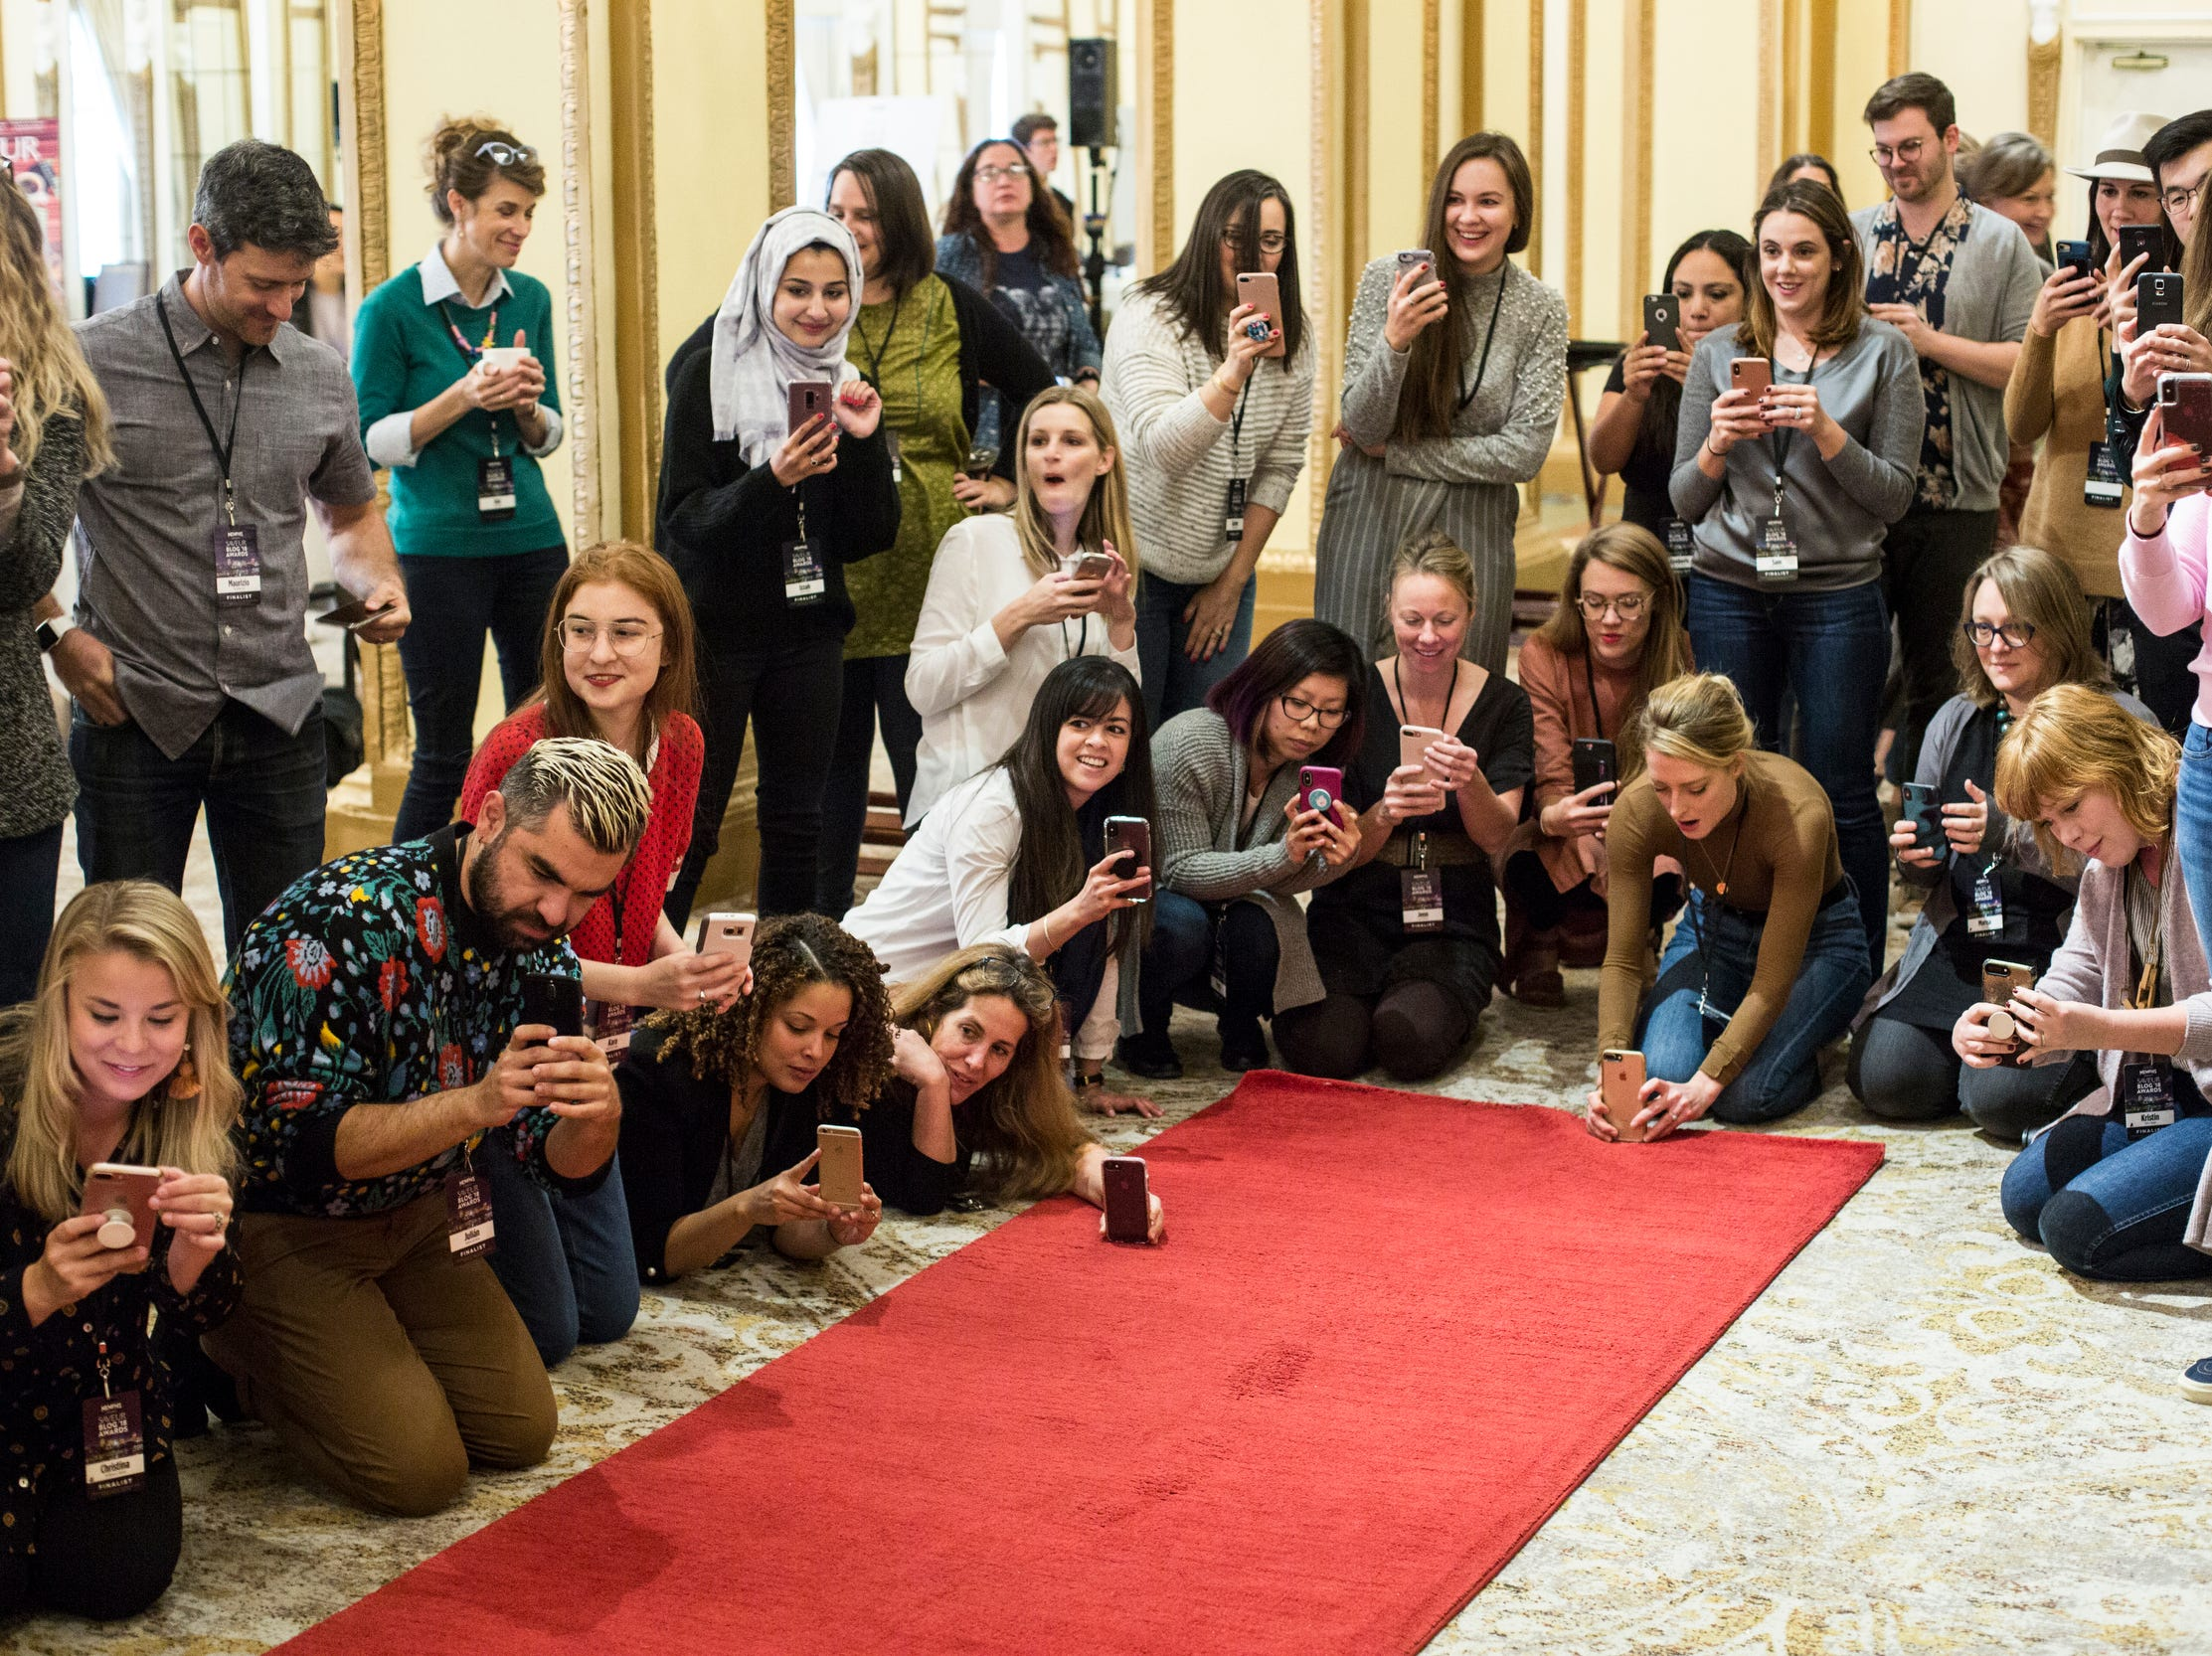 November 11 2018 - Saveur Blog Award finalists and guests gather around the red carpet during a private Peabody duck march inside of the Peabody Hotel.